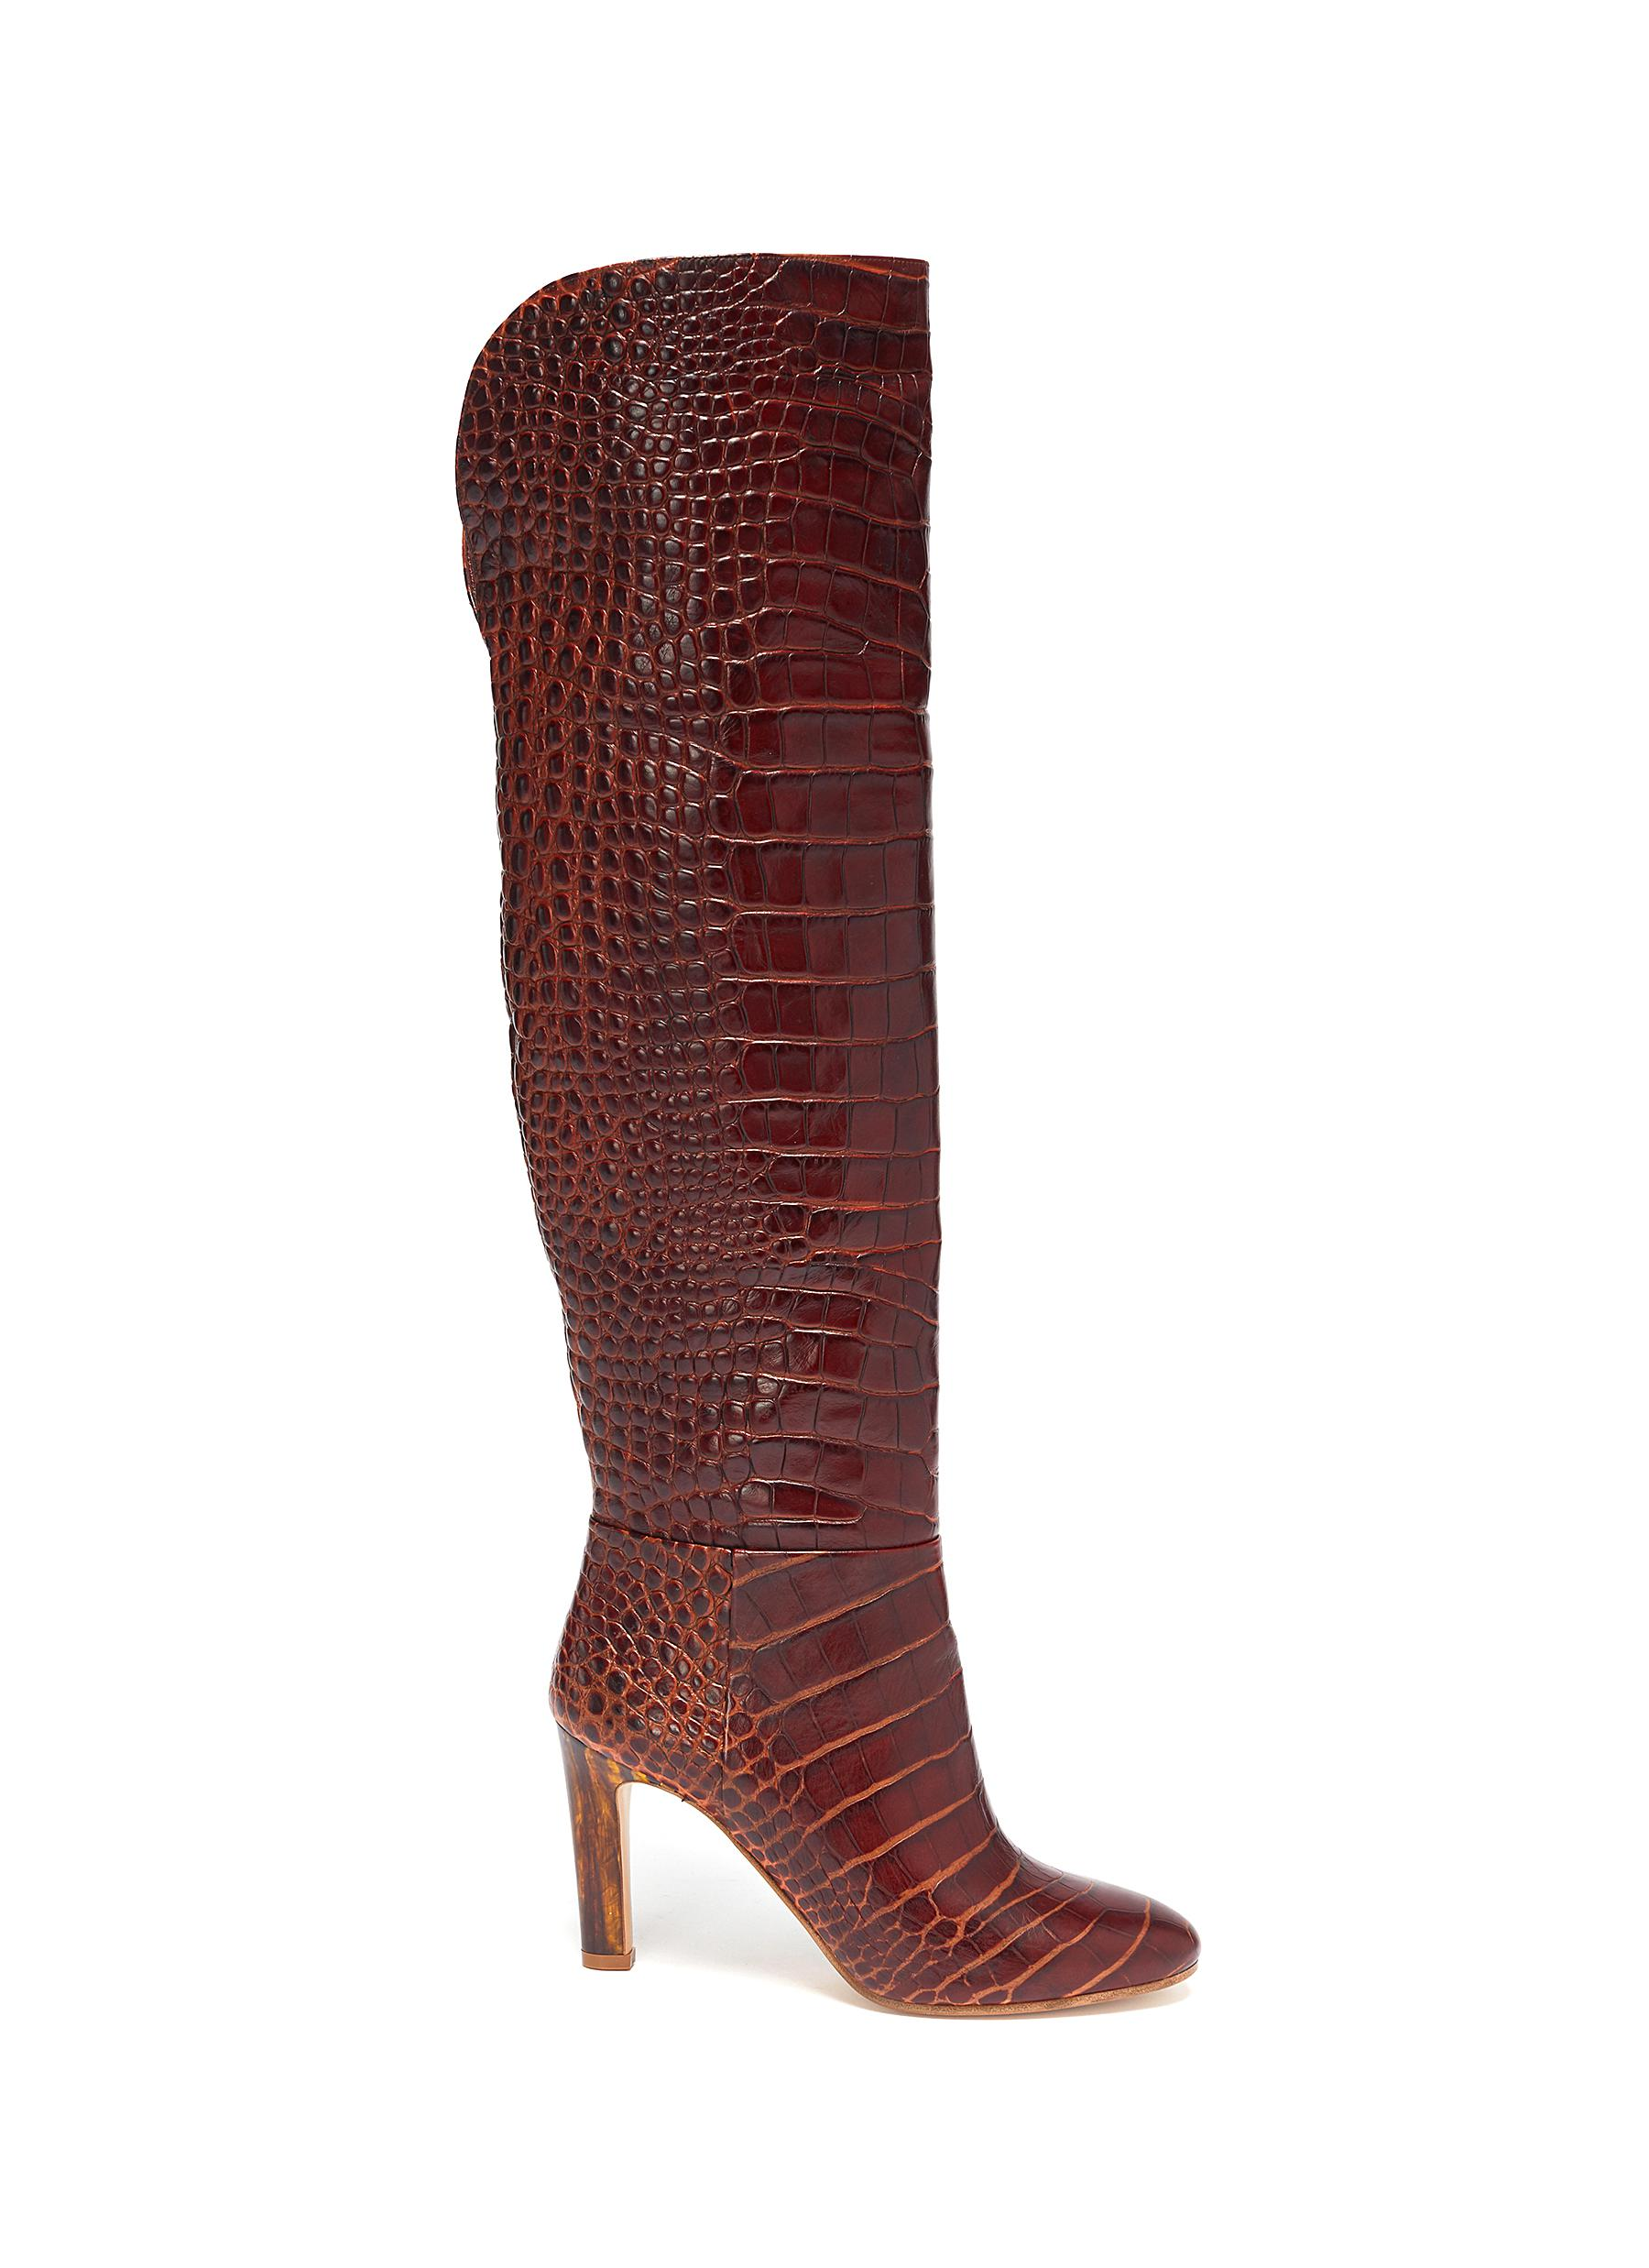 Croc embossed leather boots by Gabriela Hearst